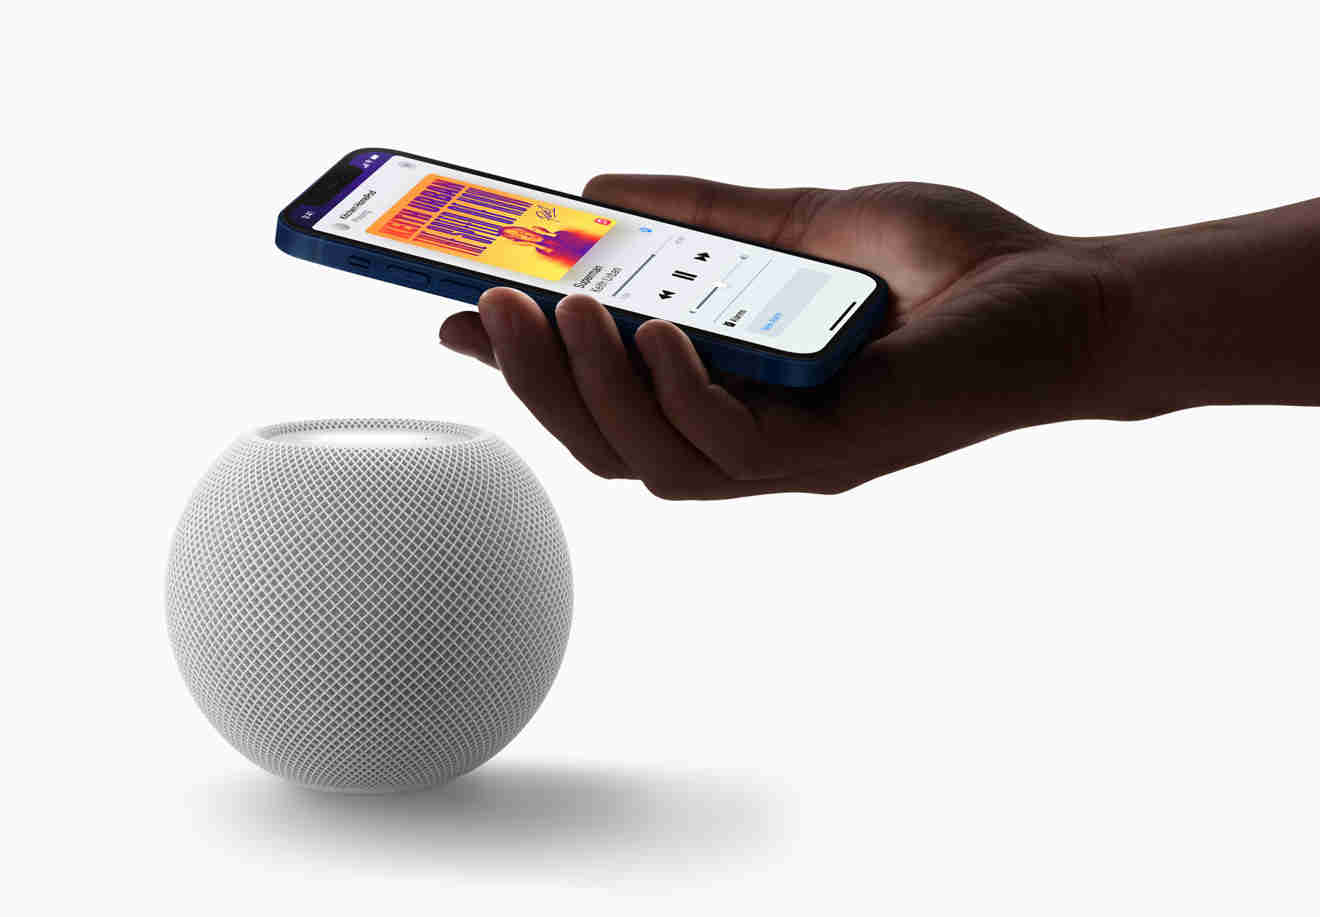 38147-72491-Apple_homepod-mini-white-iphone-pairing_10132020_bigjpglarge_2x-xl